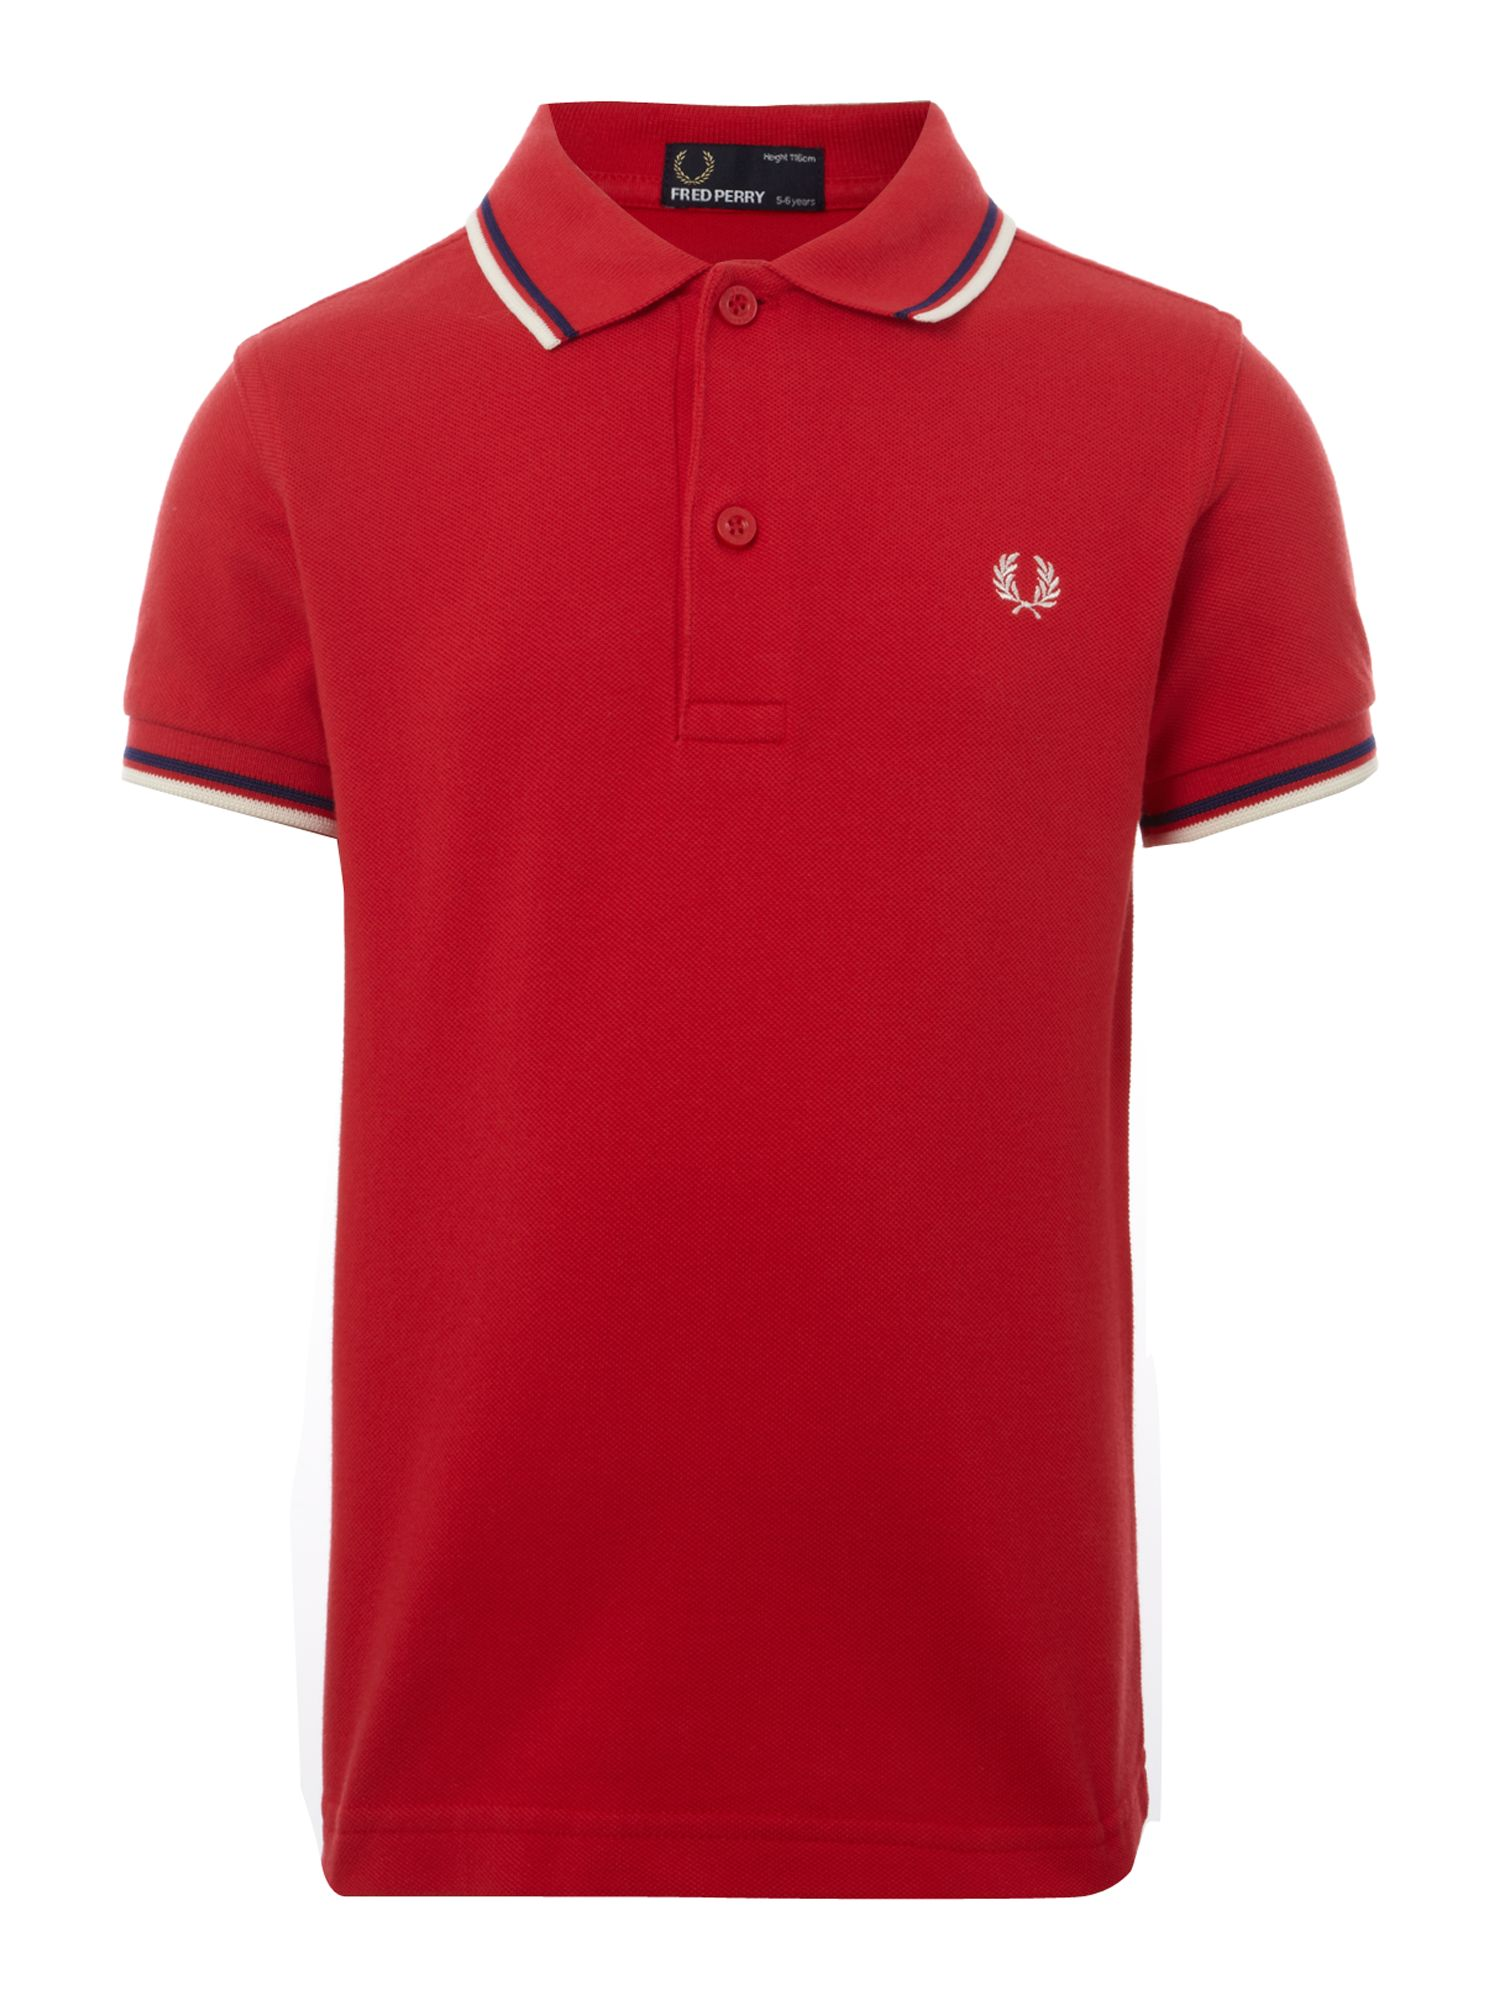 Fred Perry Boys twin tipped classic polo shirt Red